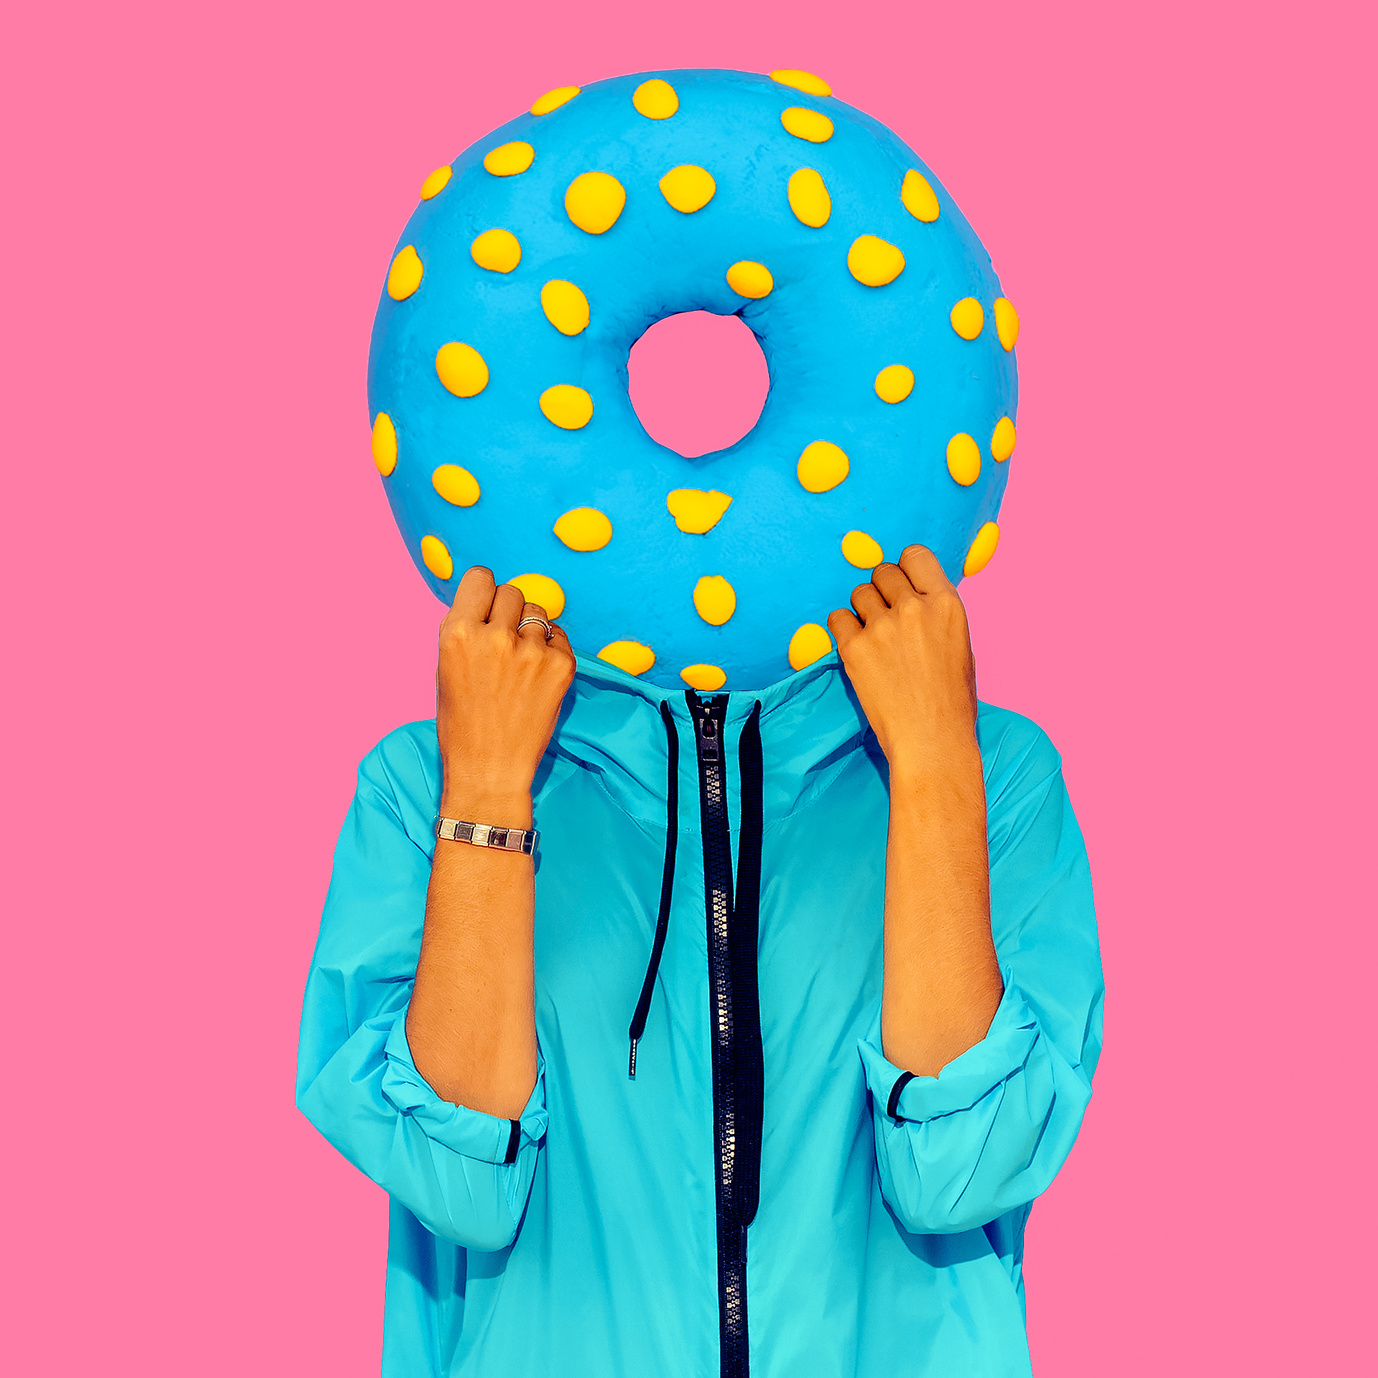 Contemporary art collage. Minimal concept.  Donut lover art